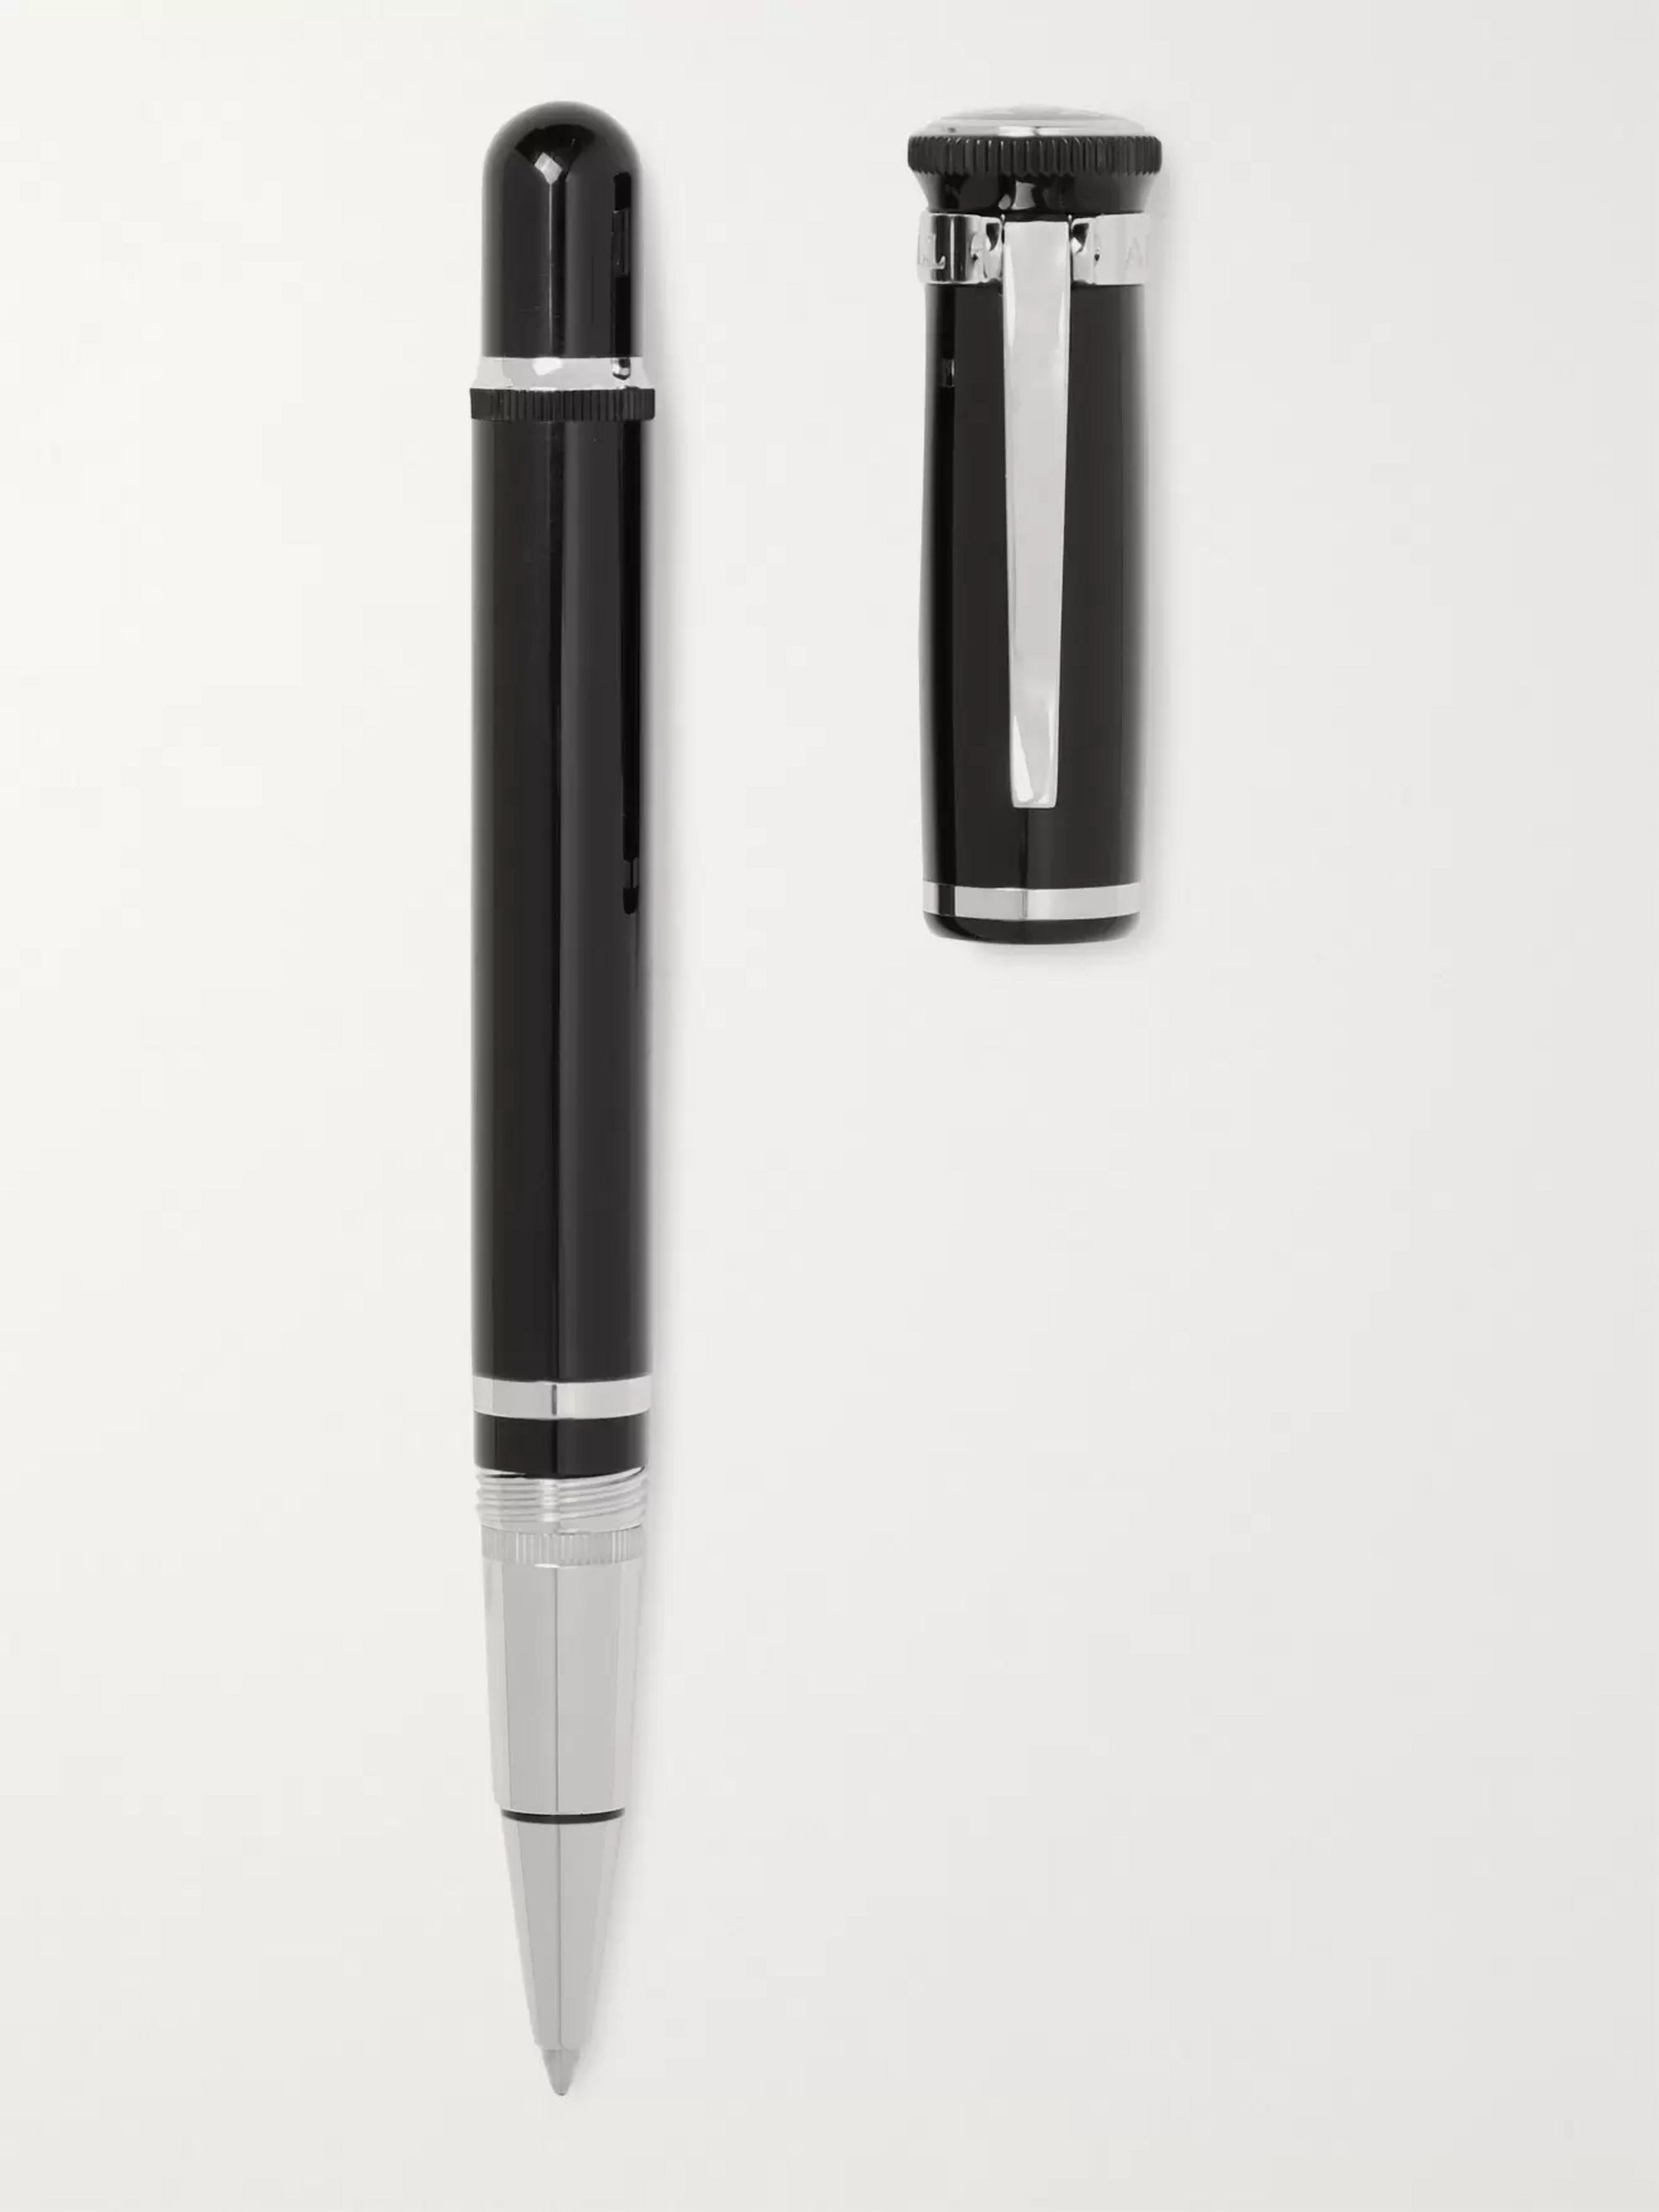 Dunhill Sentryman Resin and Silver-Tone Ballpoint Pen